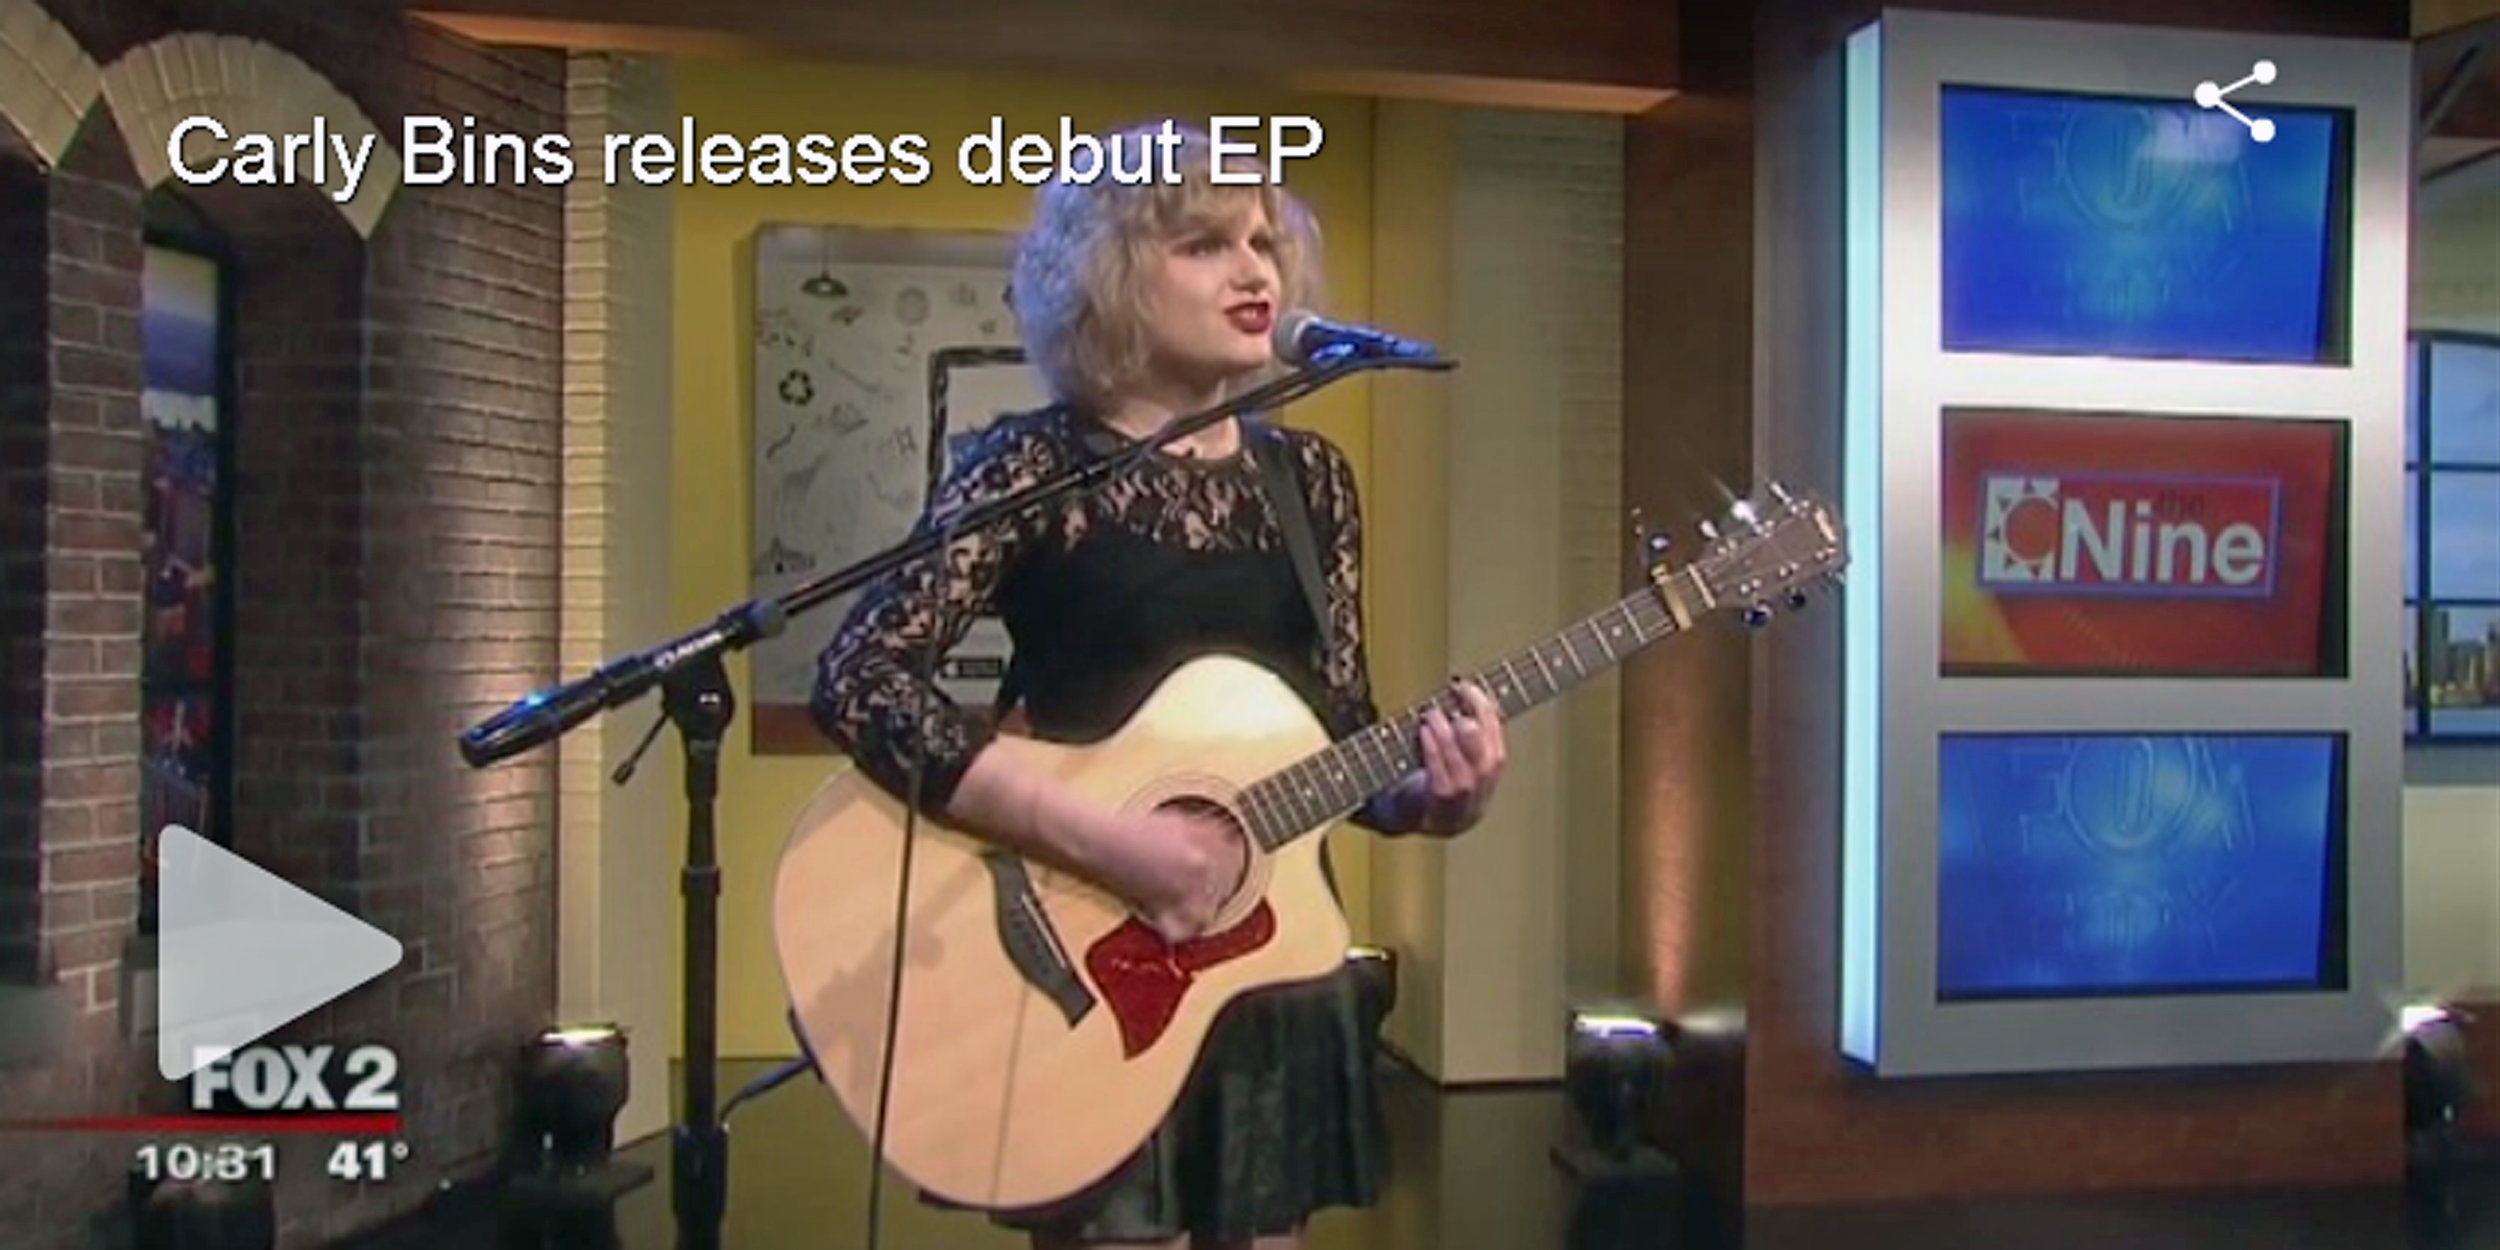 Carly Bins releases debut EP